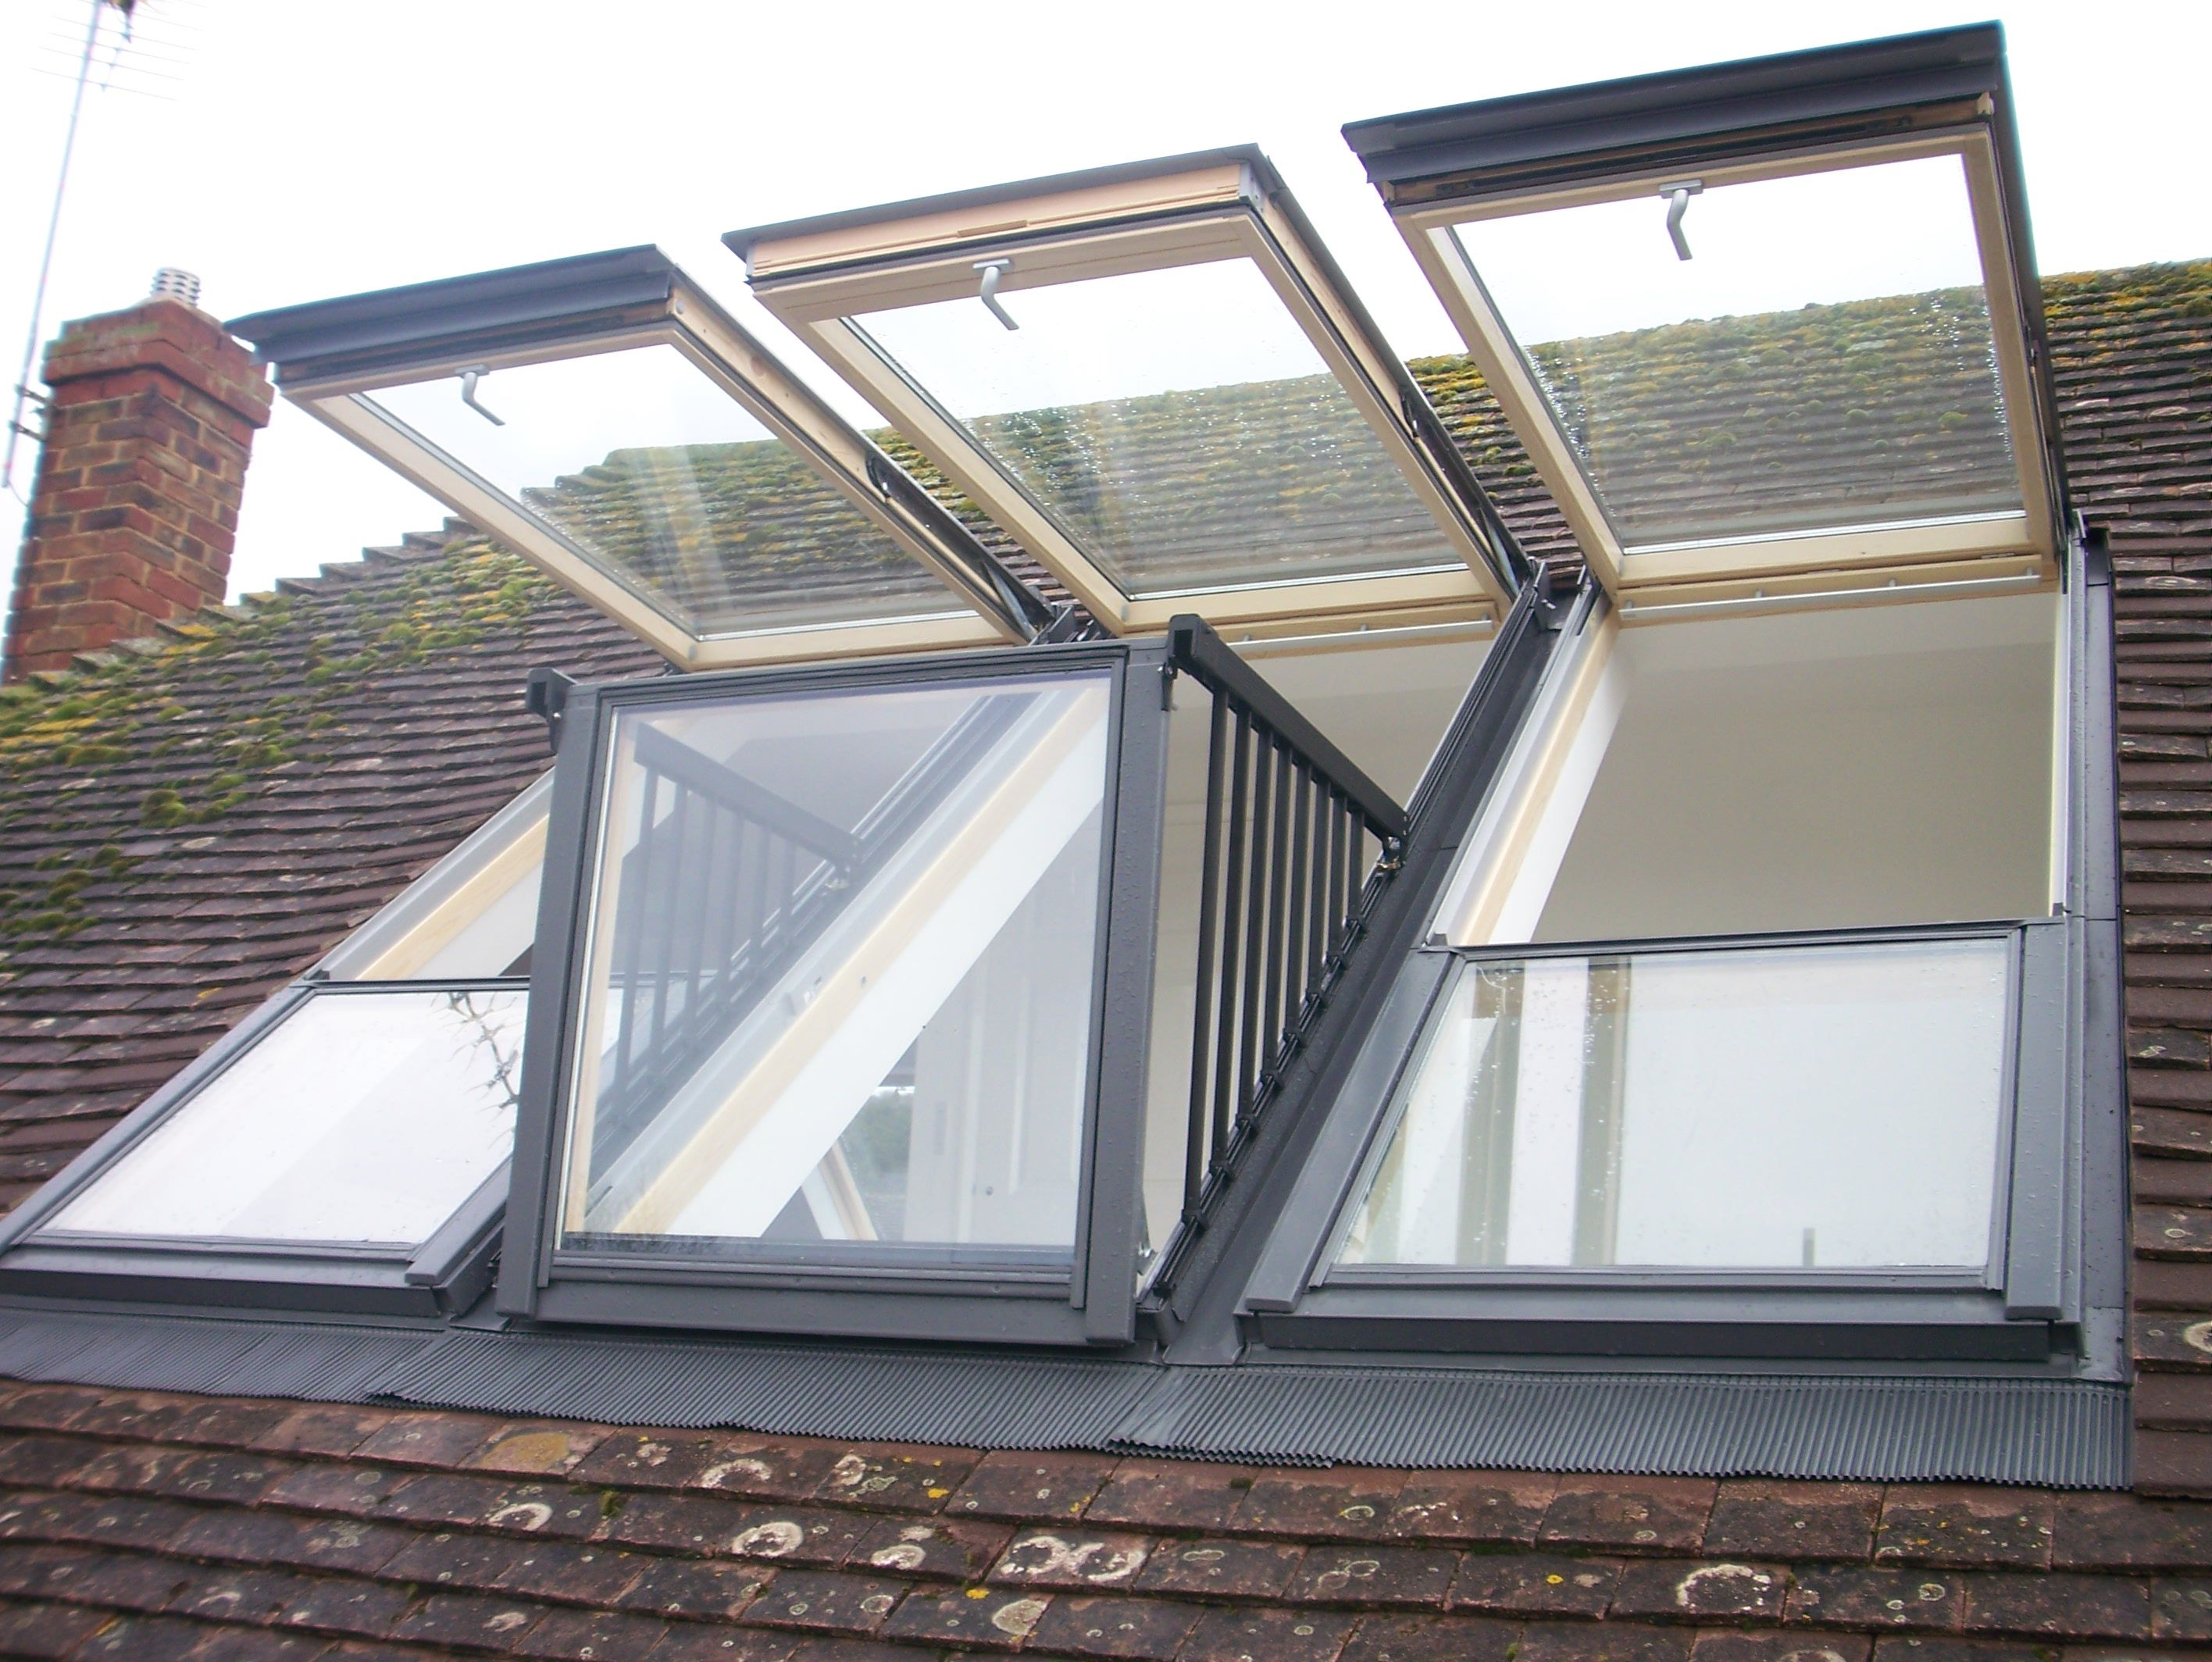 Dachfenster velux cabrio  VELUX Cabrio roof window balcony - it'll give your room the wow ...